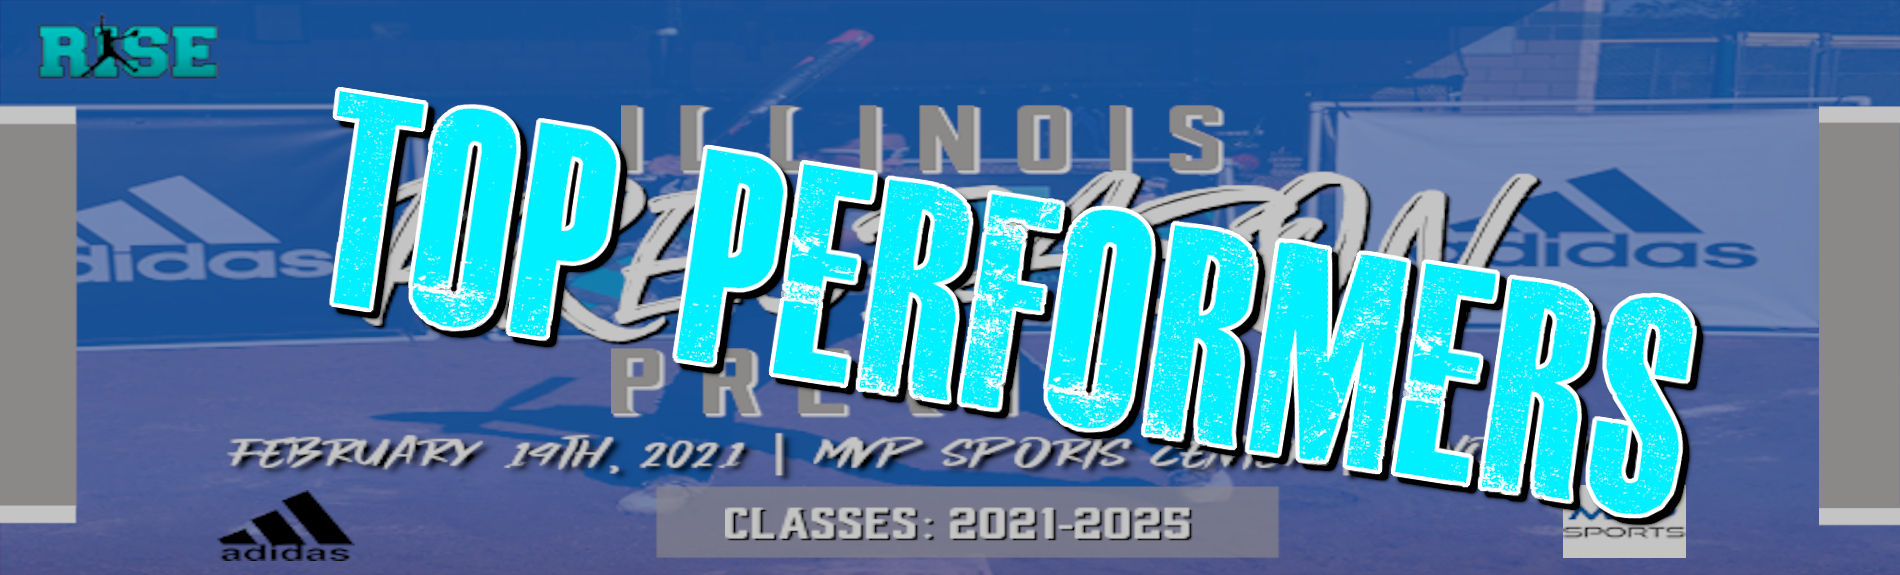 "Illinois Preseason Preview ""TOP PERFORMERS"""